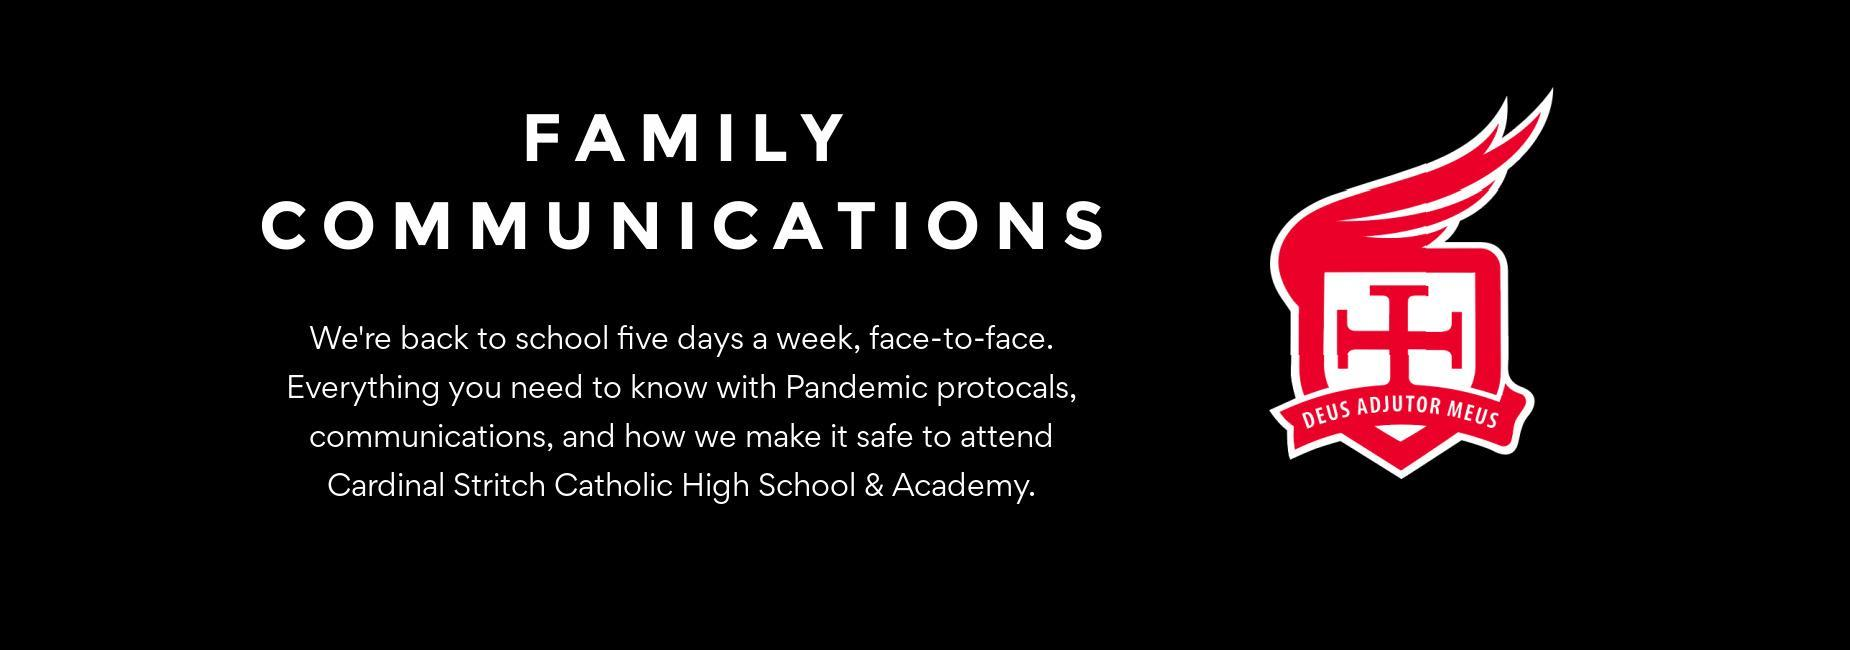 Family Communications